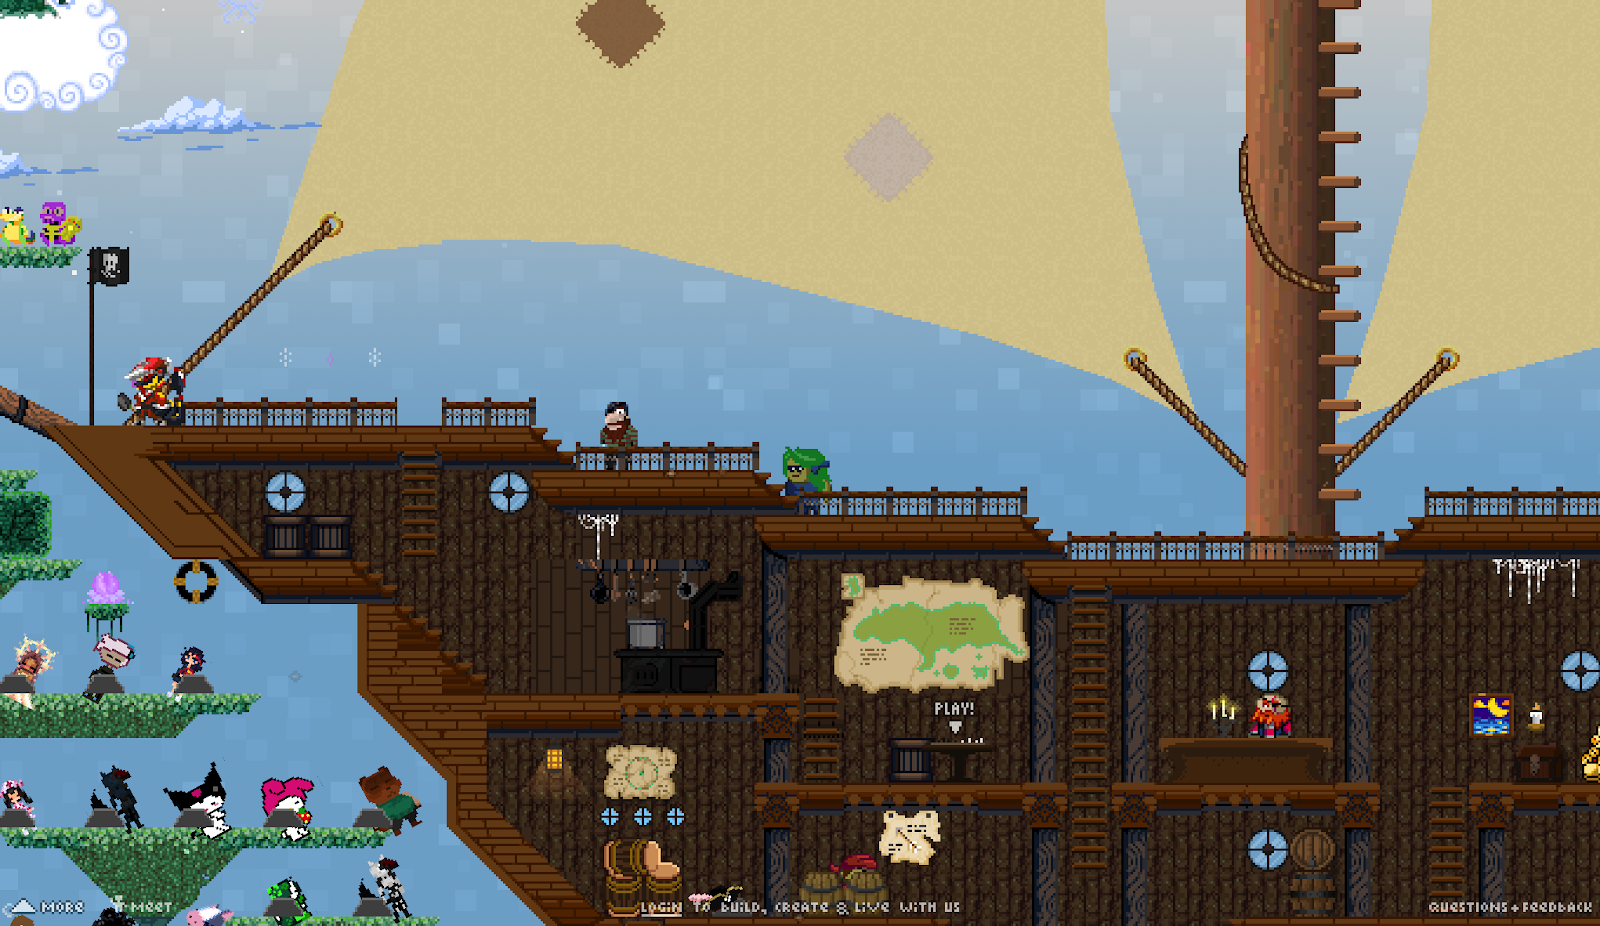 Giant pirate ship in Manyland